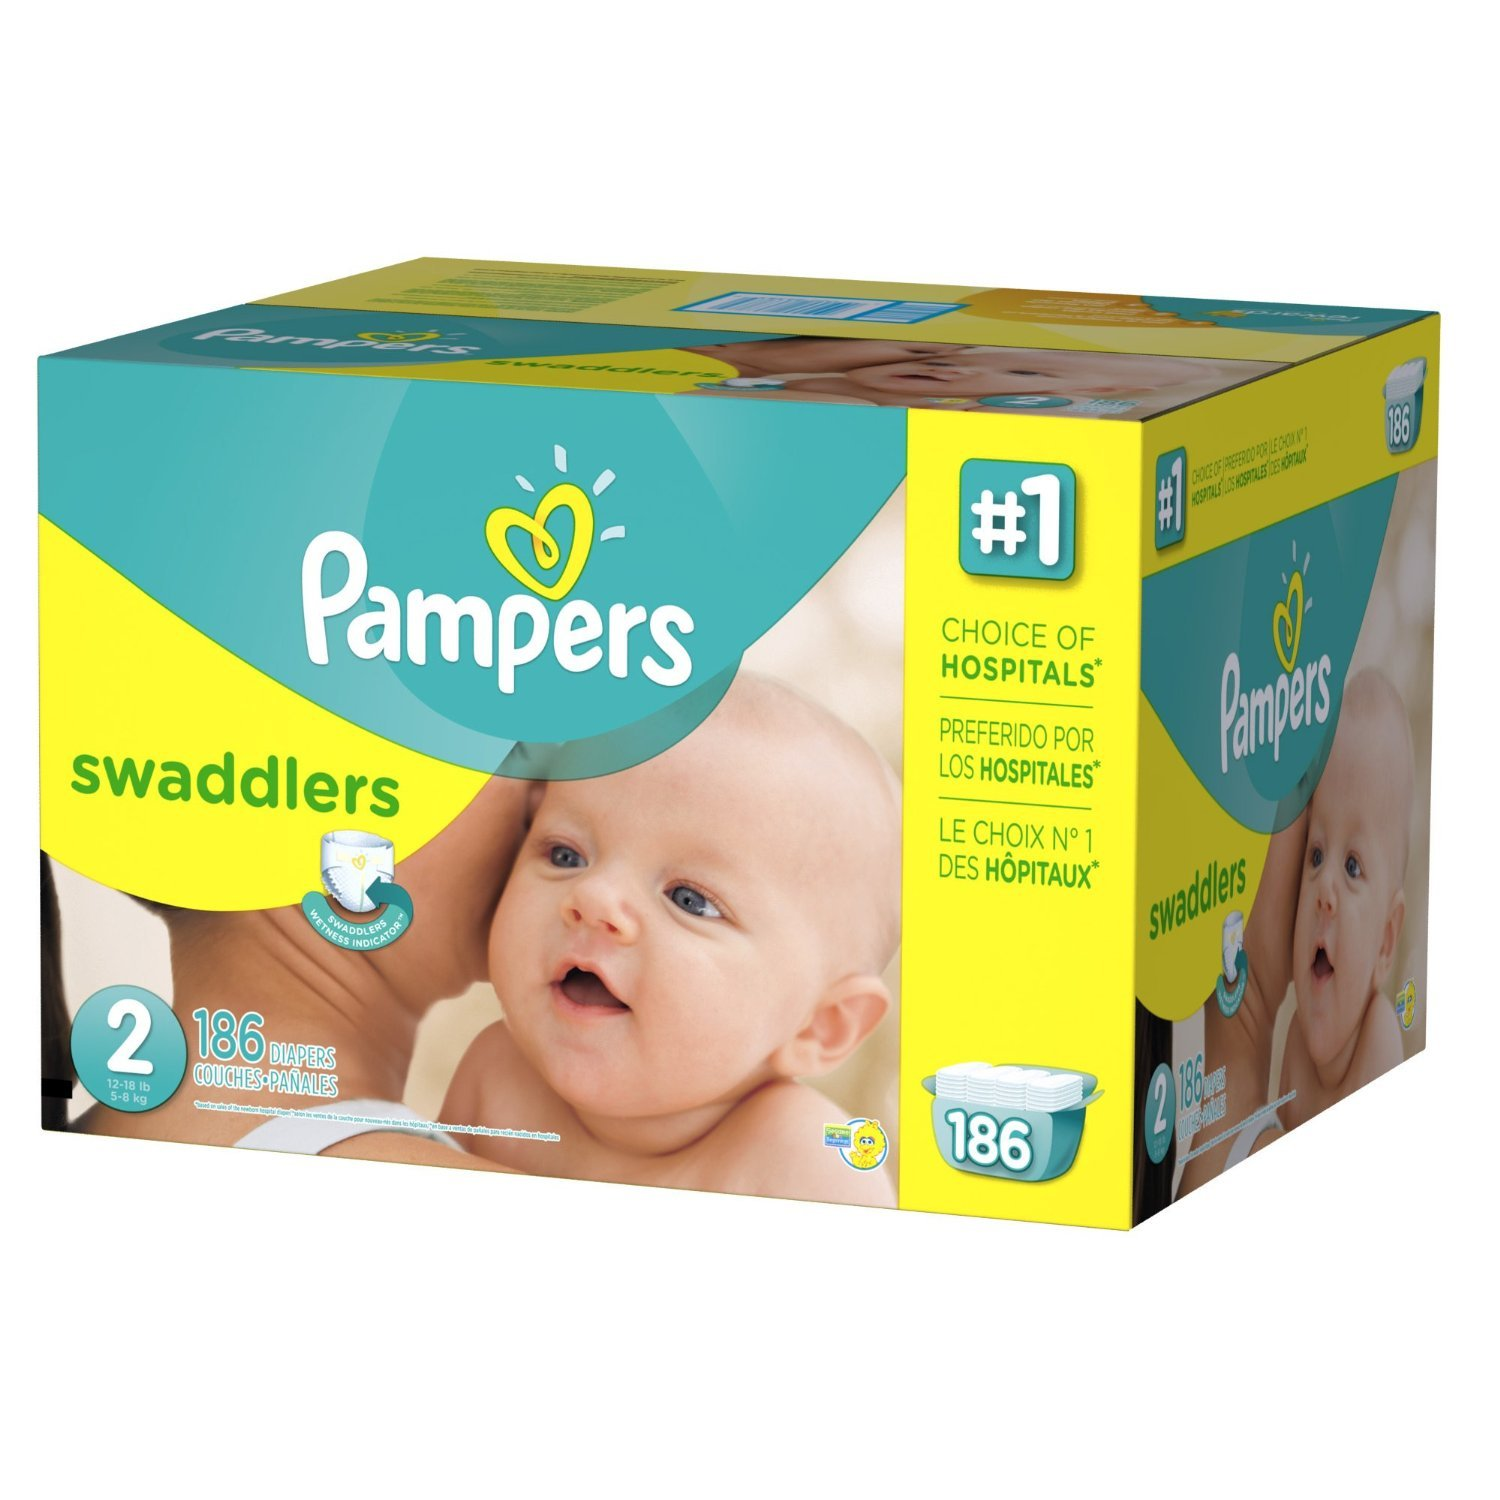 Amazon.com: Pampers Swaddlers Diapers Size 2 Economy Pack Plus 186 Count: Health & Personal Care